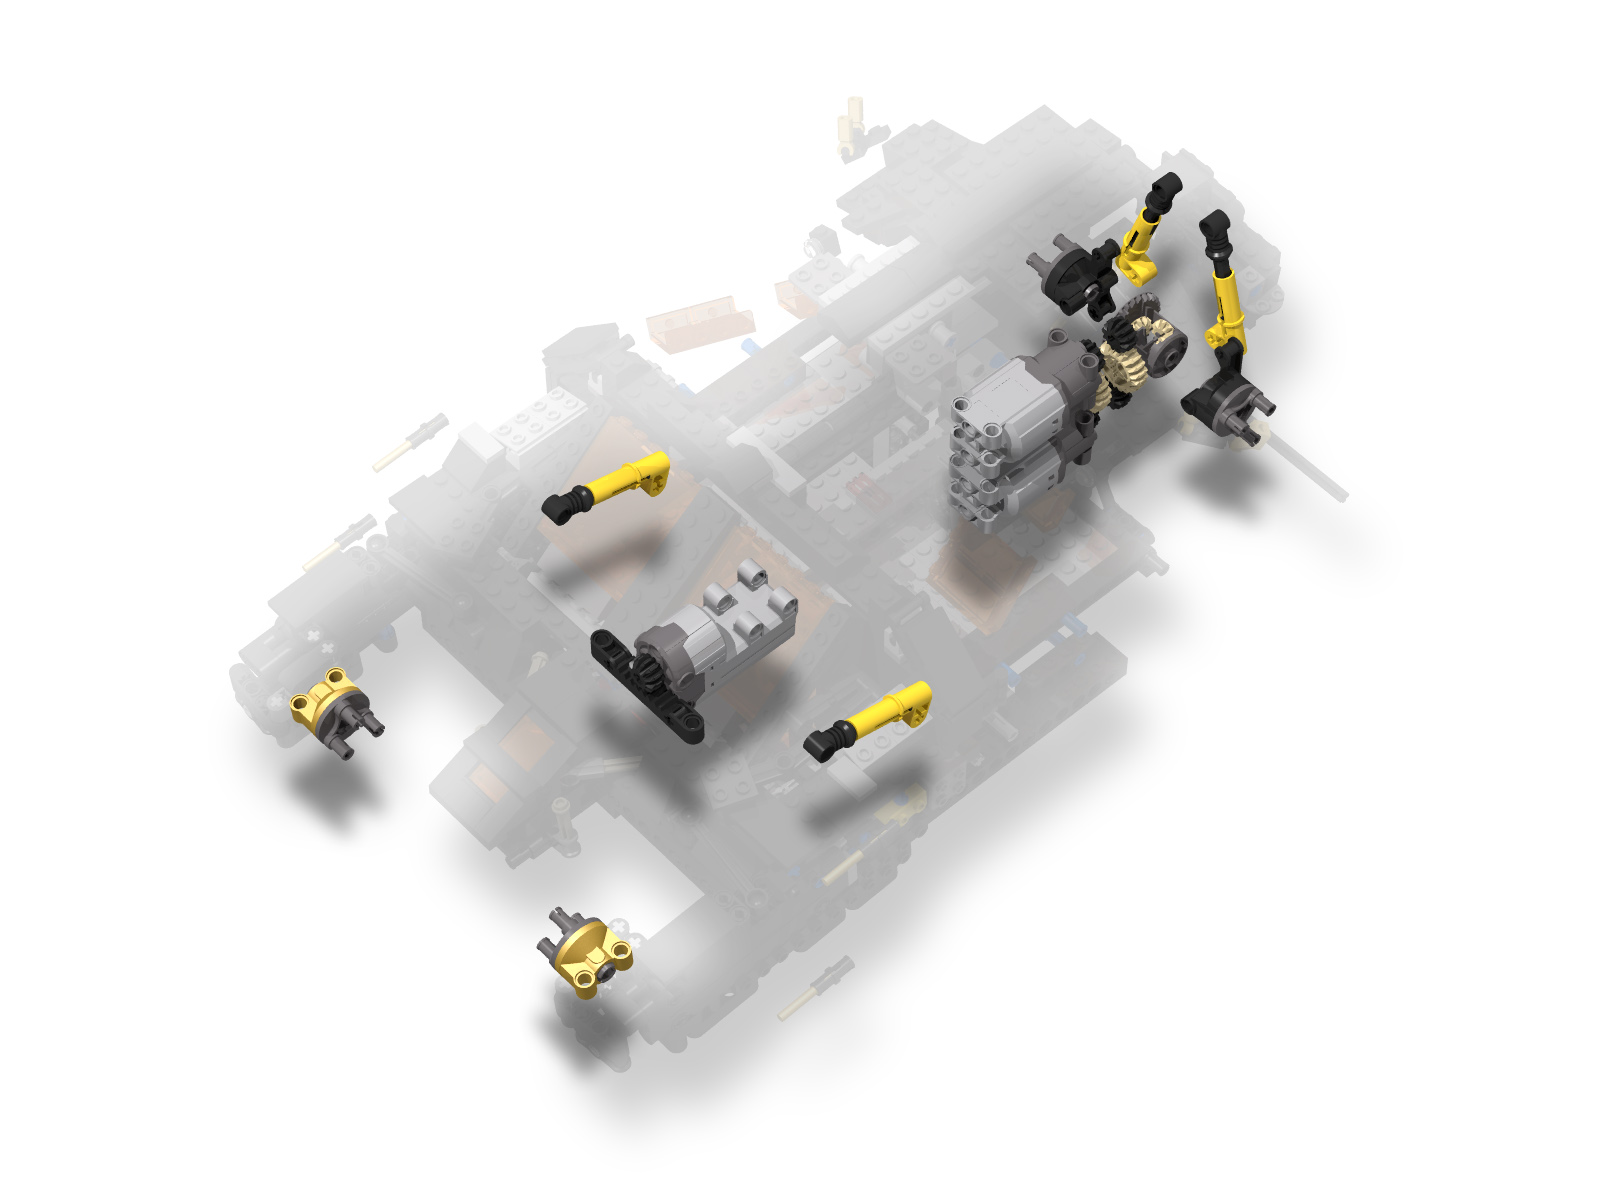 tumbler_45_renderings_white_tech components